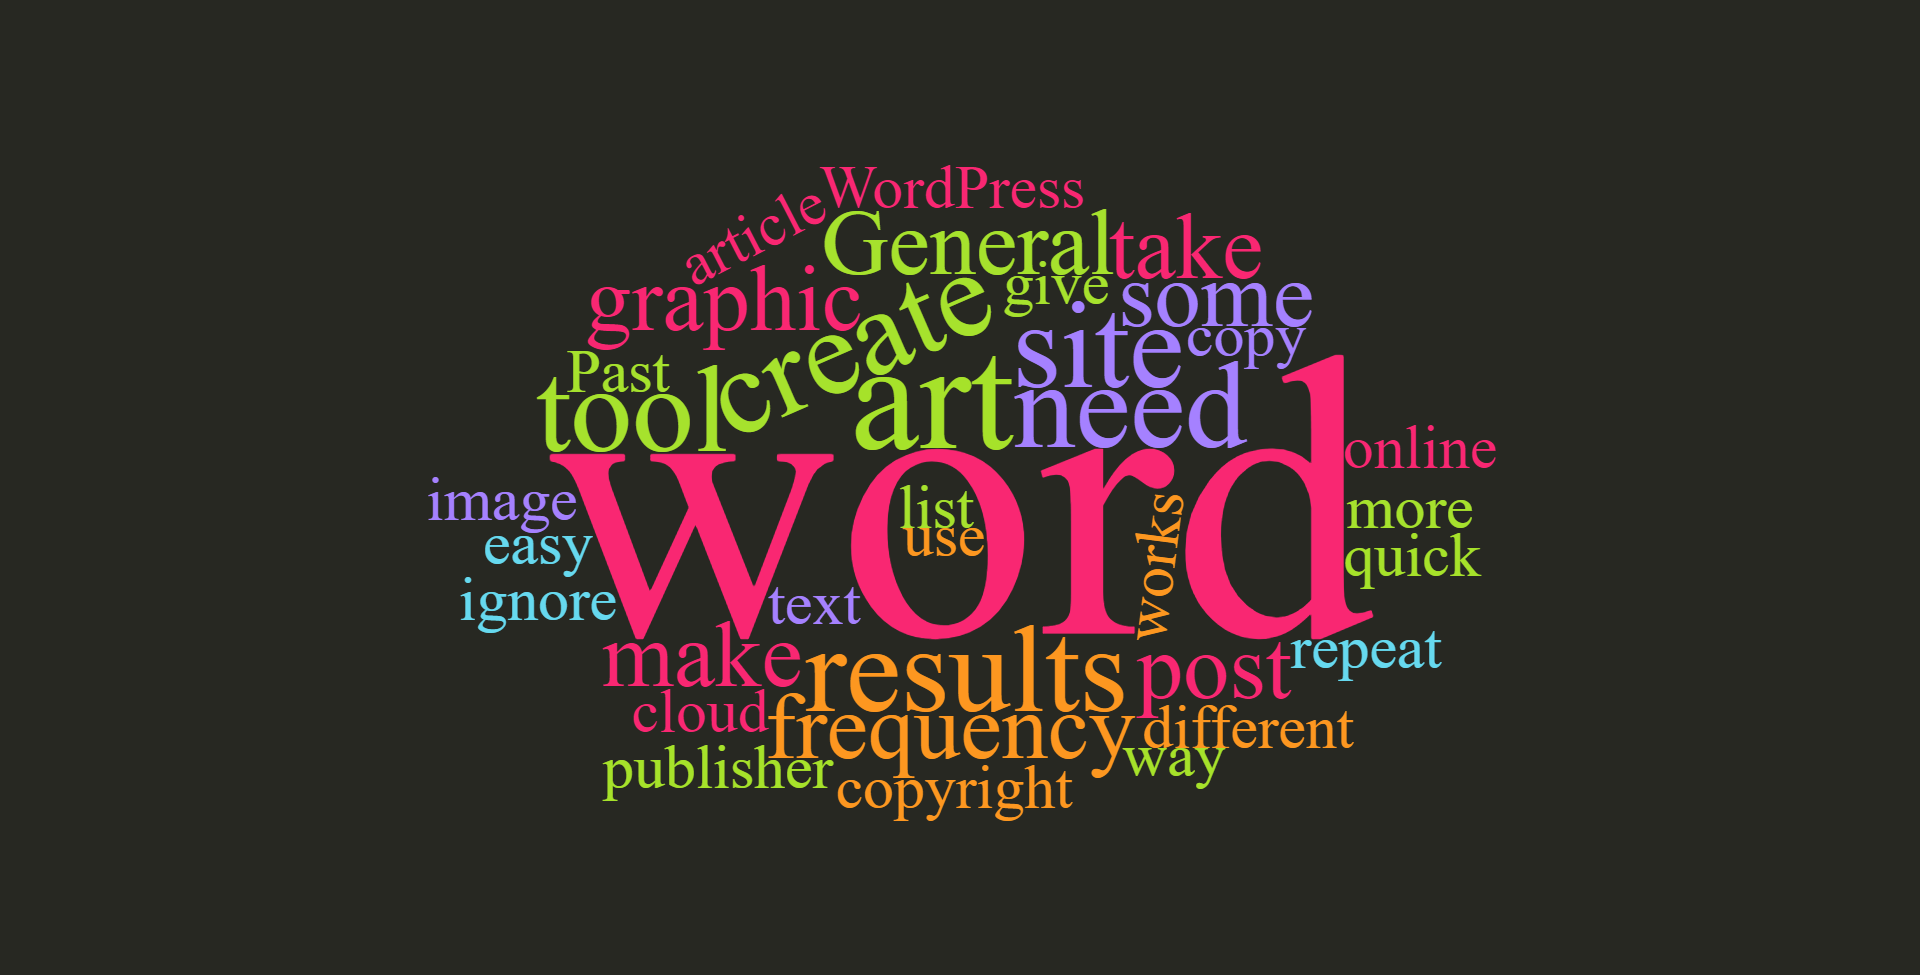 Word Art Sample from https://wordcloud.timdream.org/